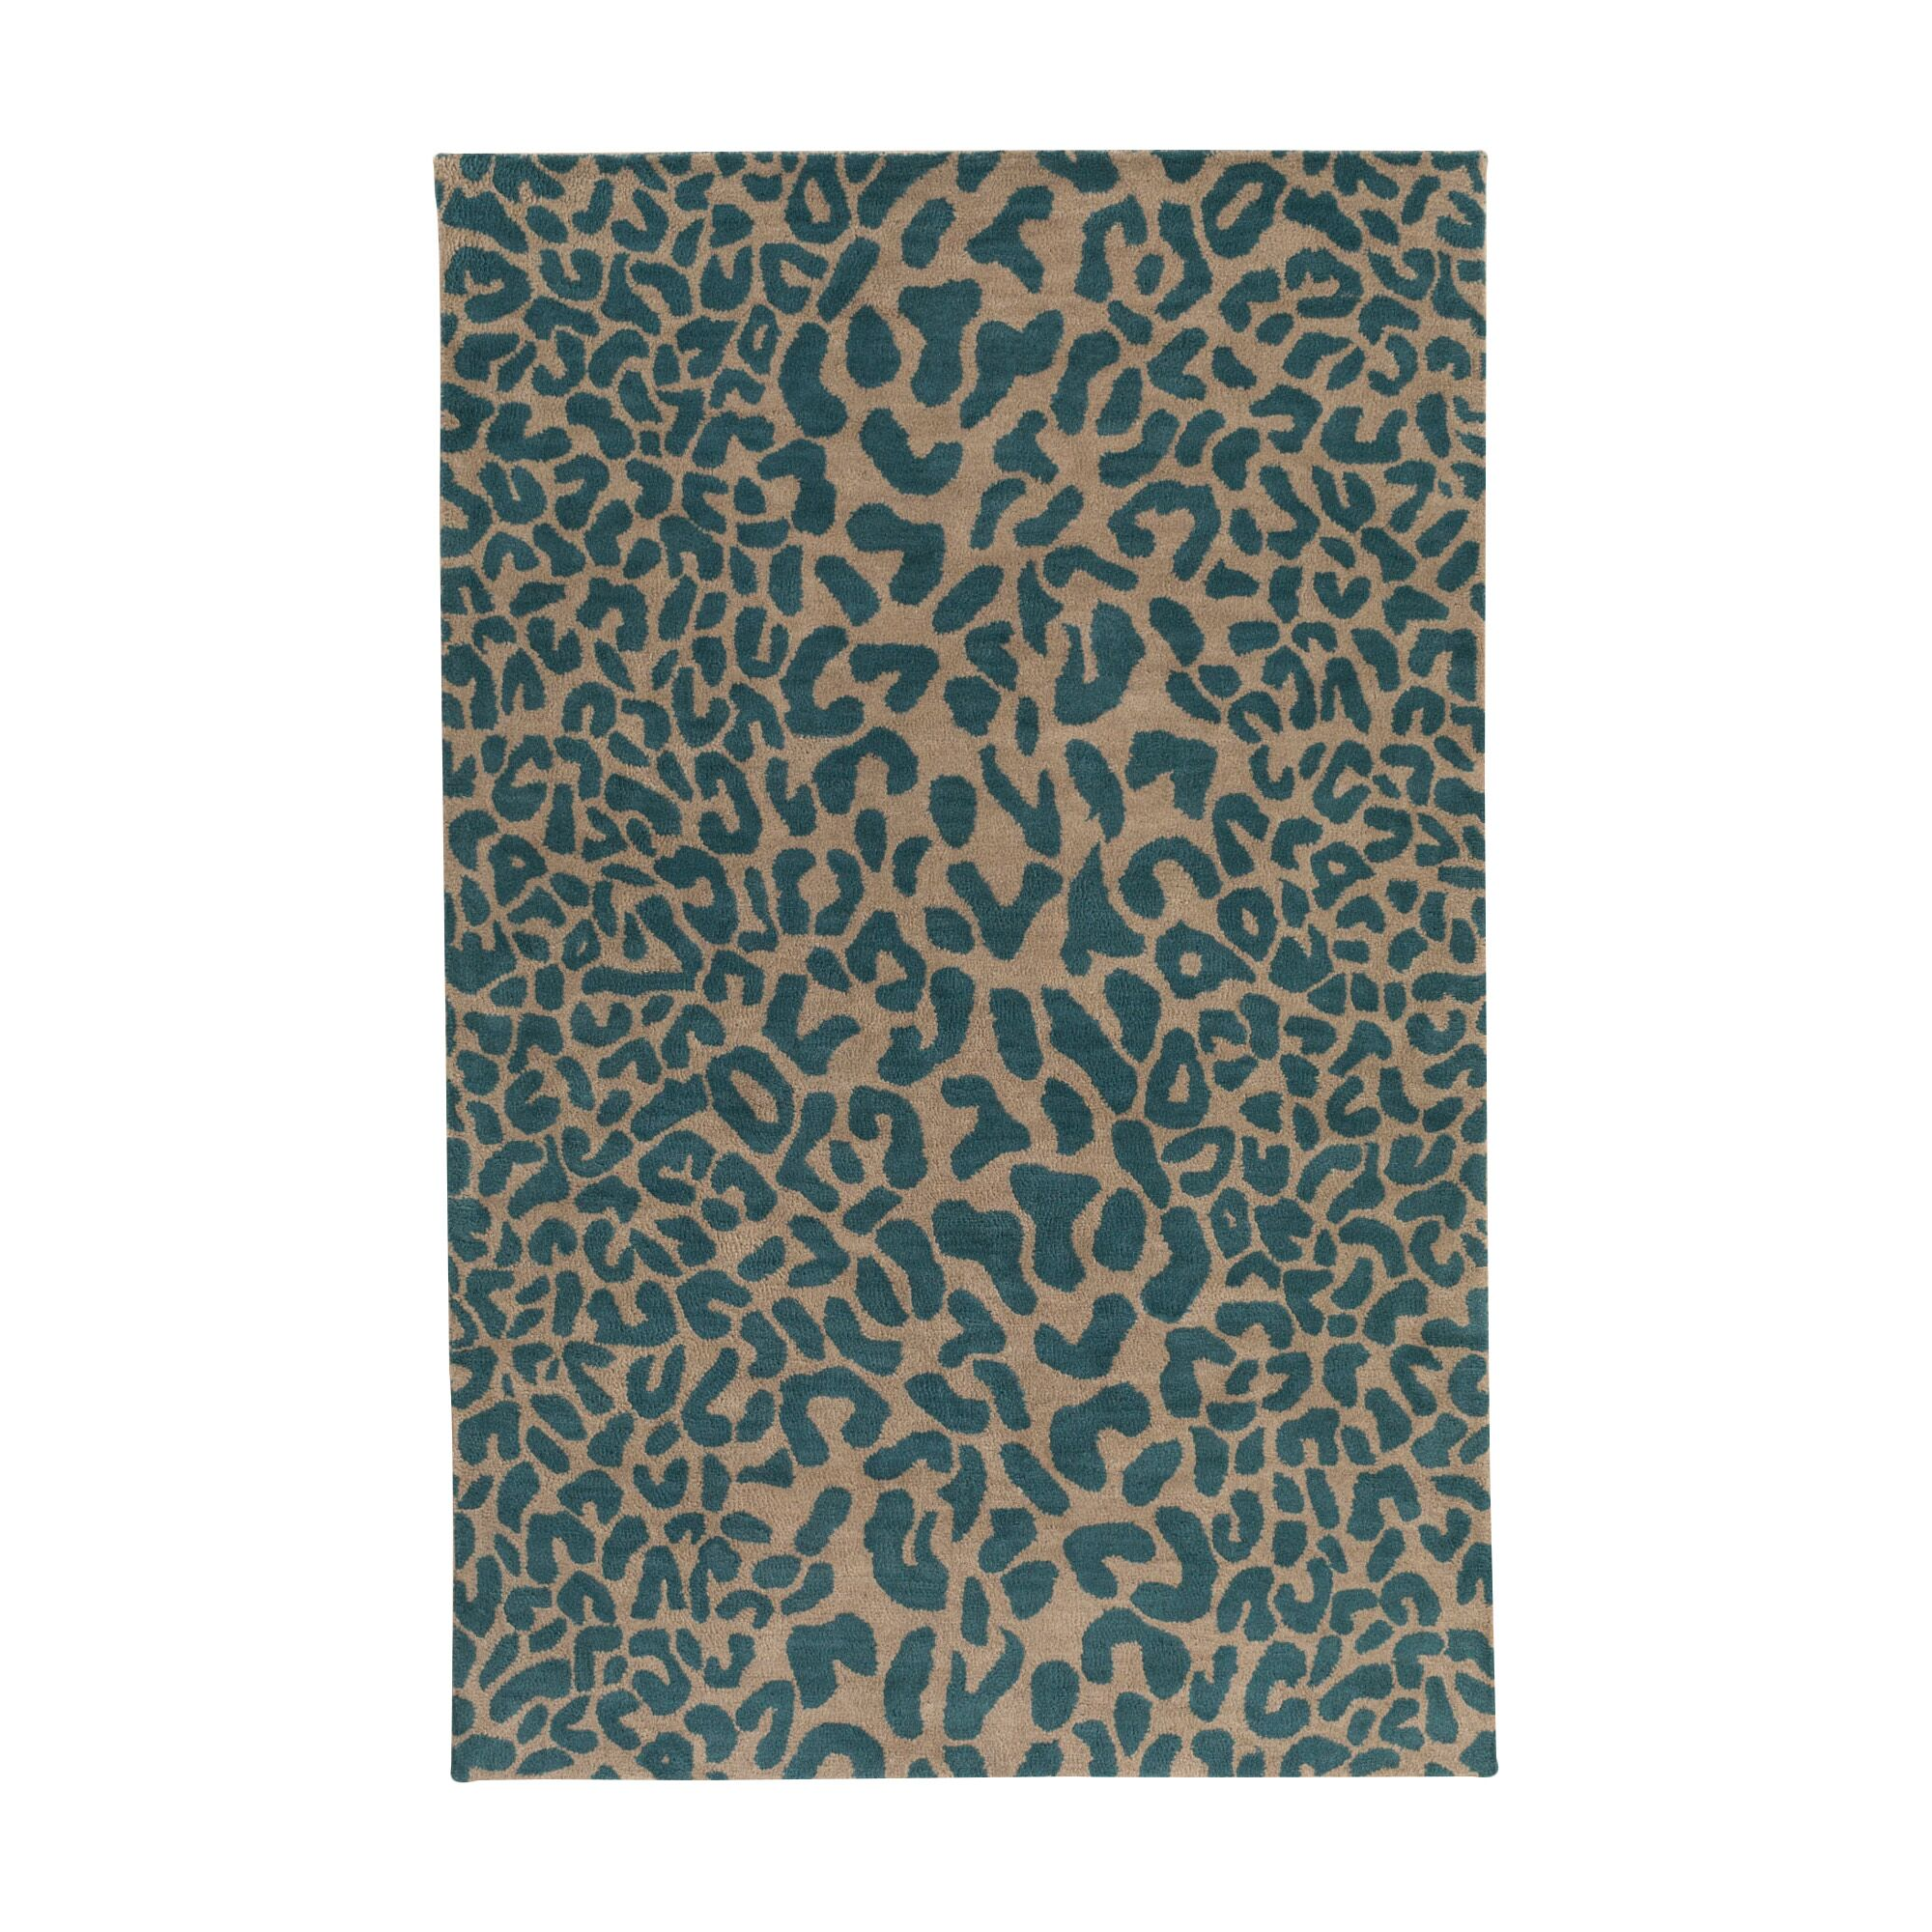 Macias Teal Animal Print Area Rug Rug Size: Rectangle 4' x 6'